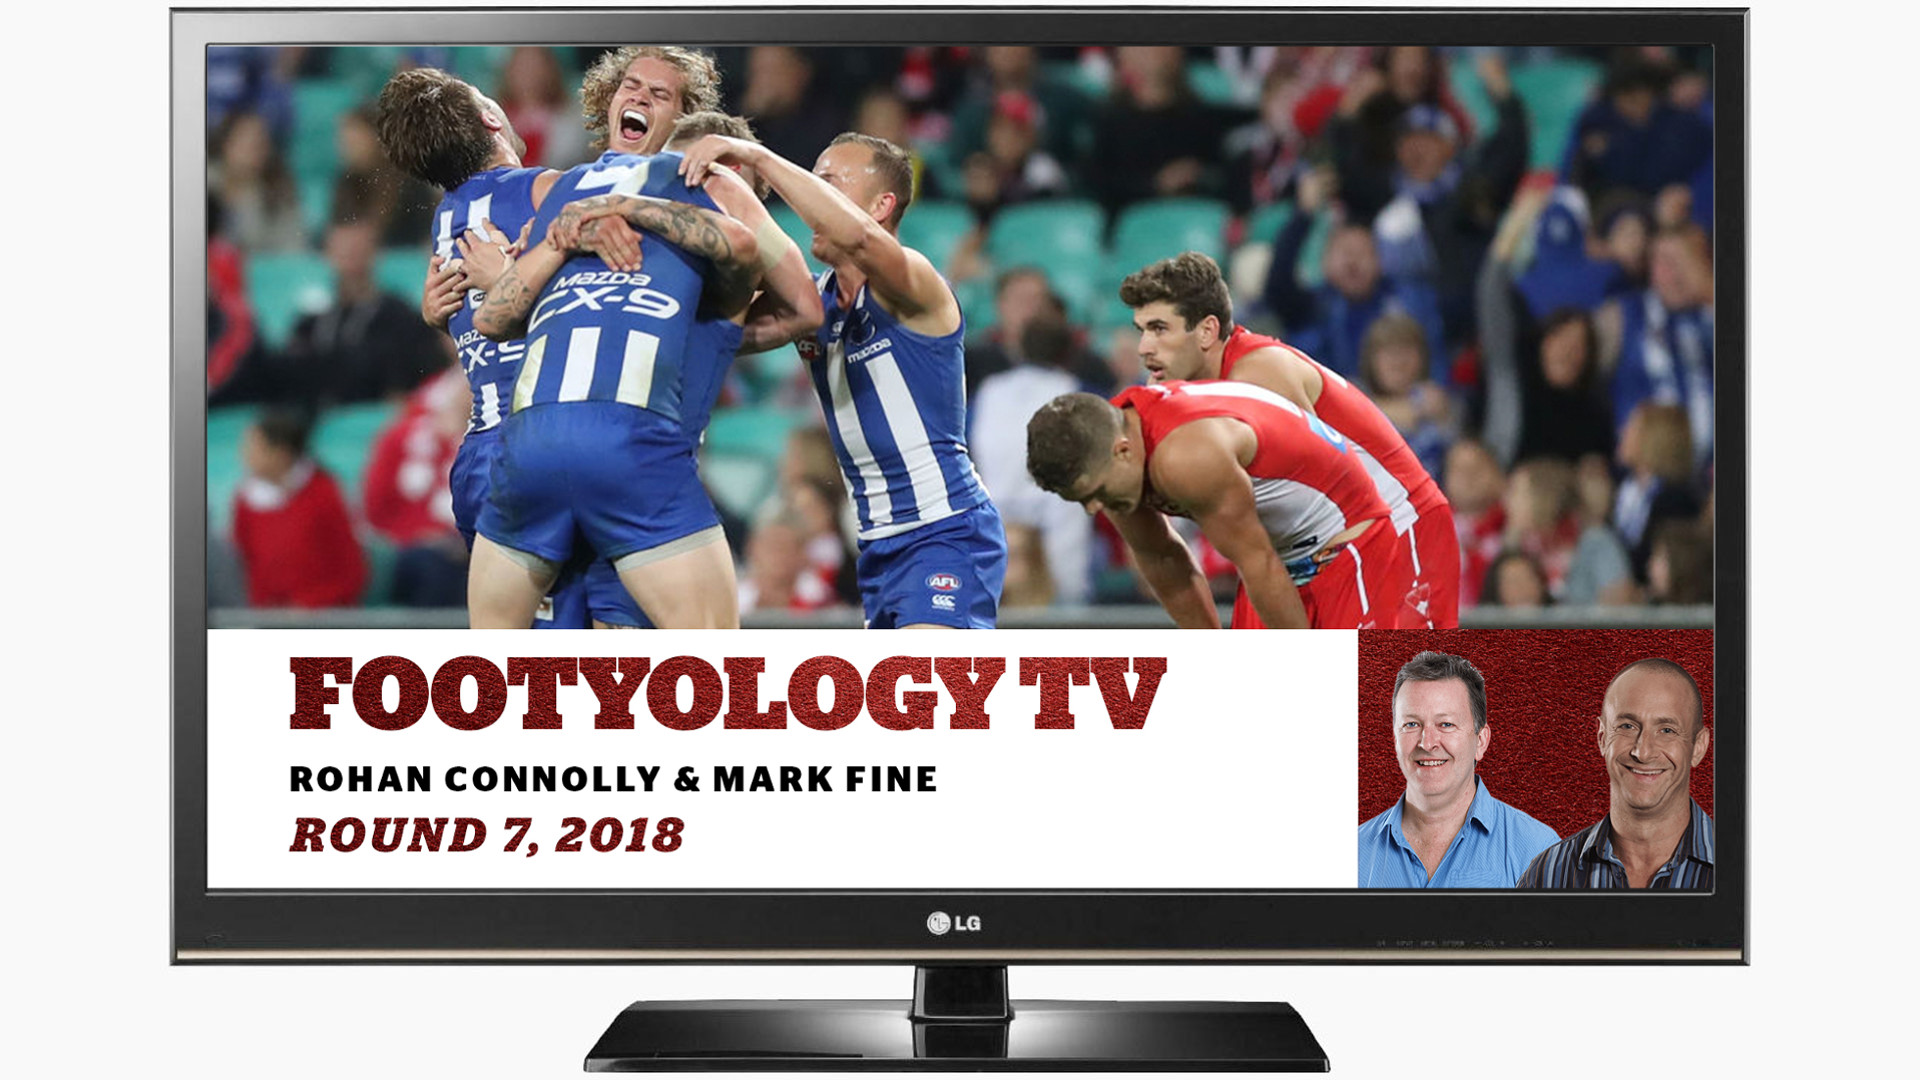 Footyology TV - Monday 7th May 2018